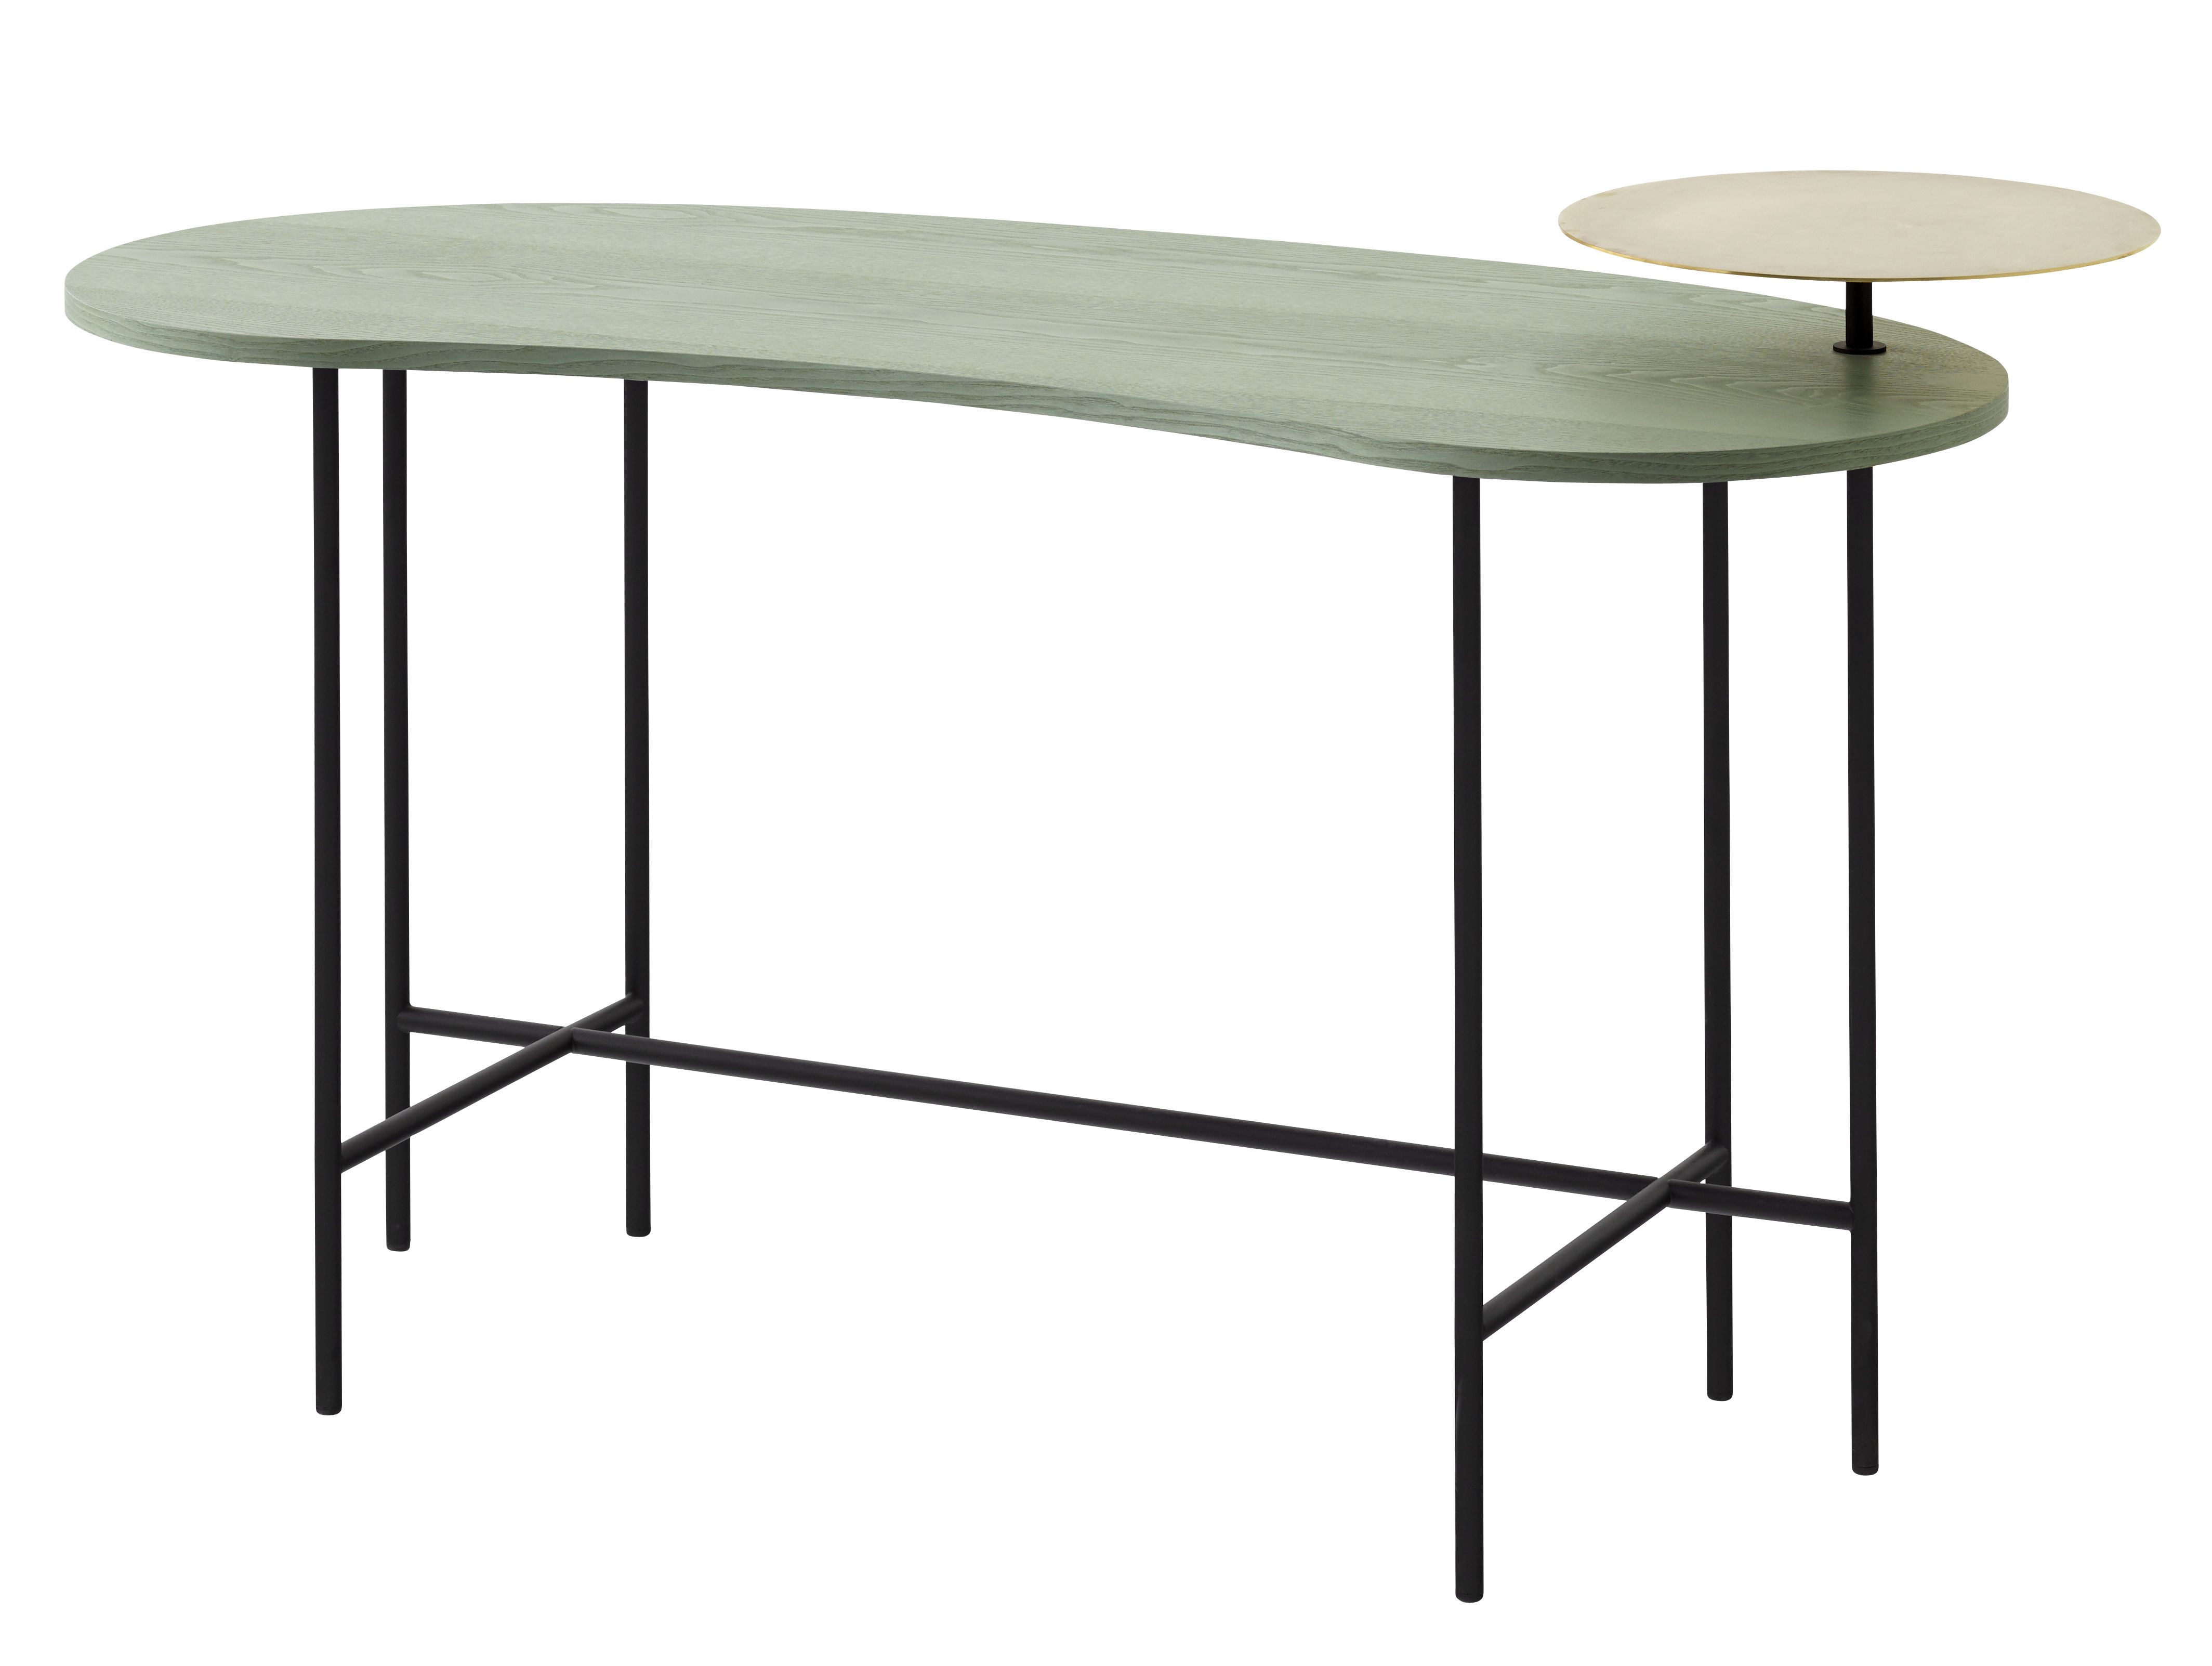 Furniture - Office Furniture - Palette JH9 Desk - 2 tops by &tradition - Grey green / Brass / Black feet - Ashwood, Brass, Lacquered steel